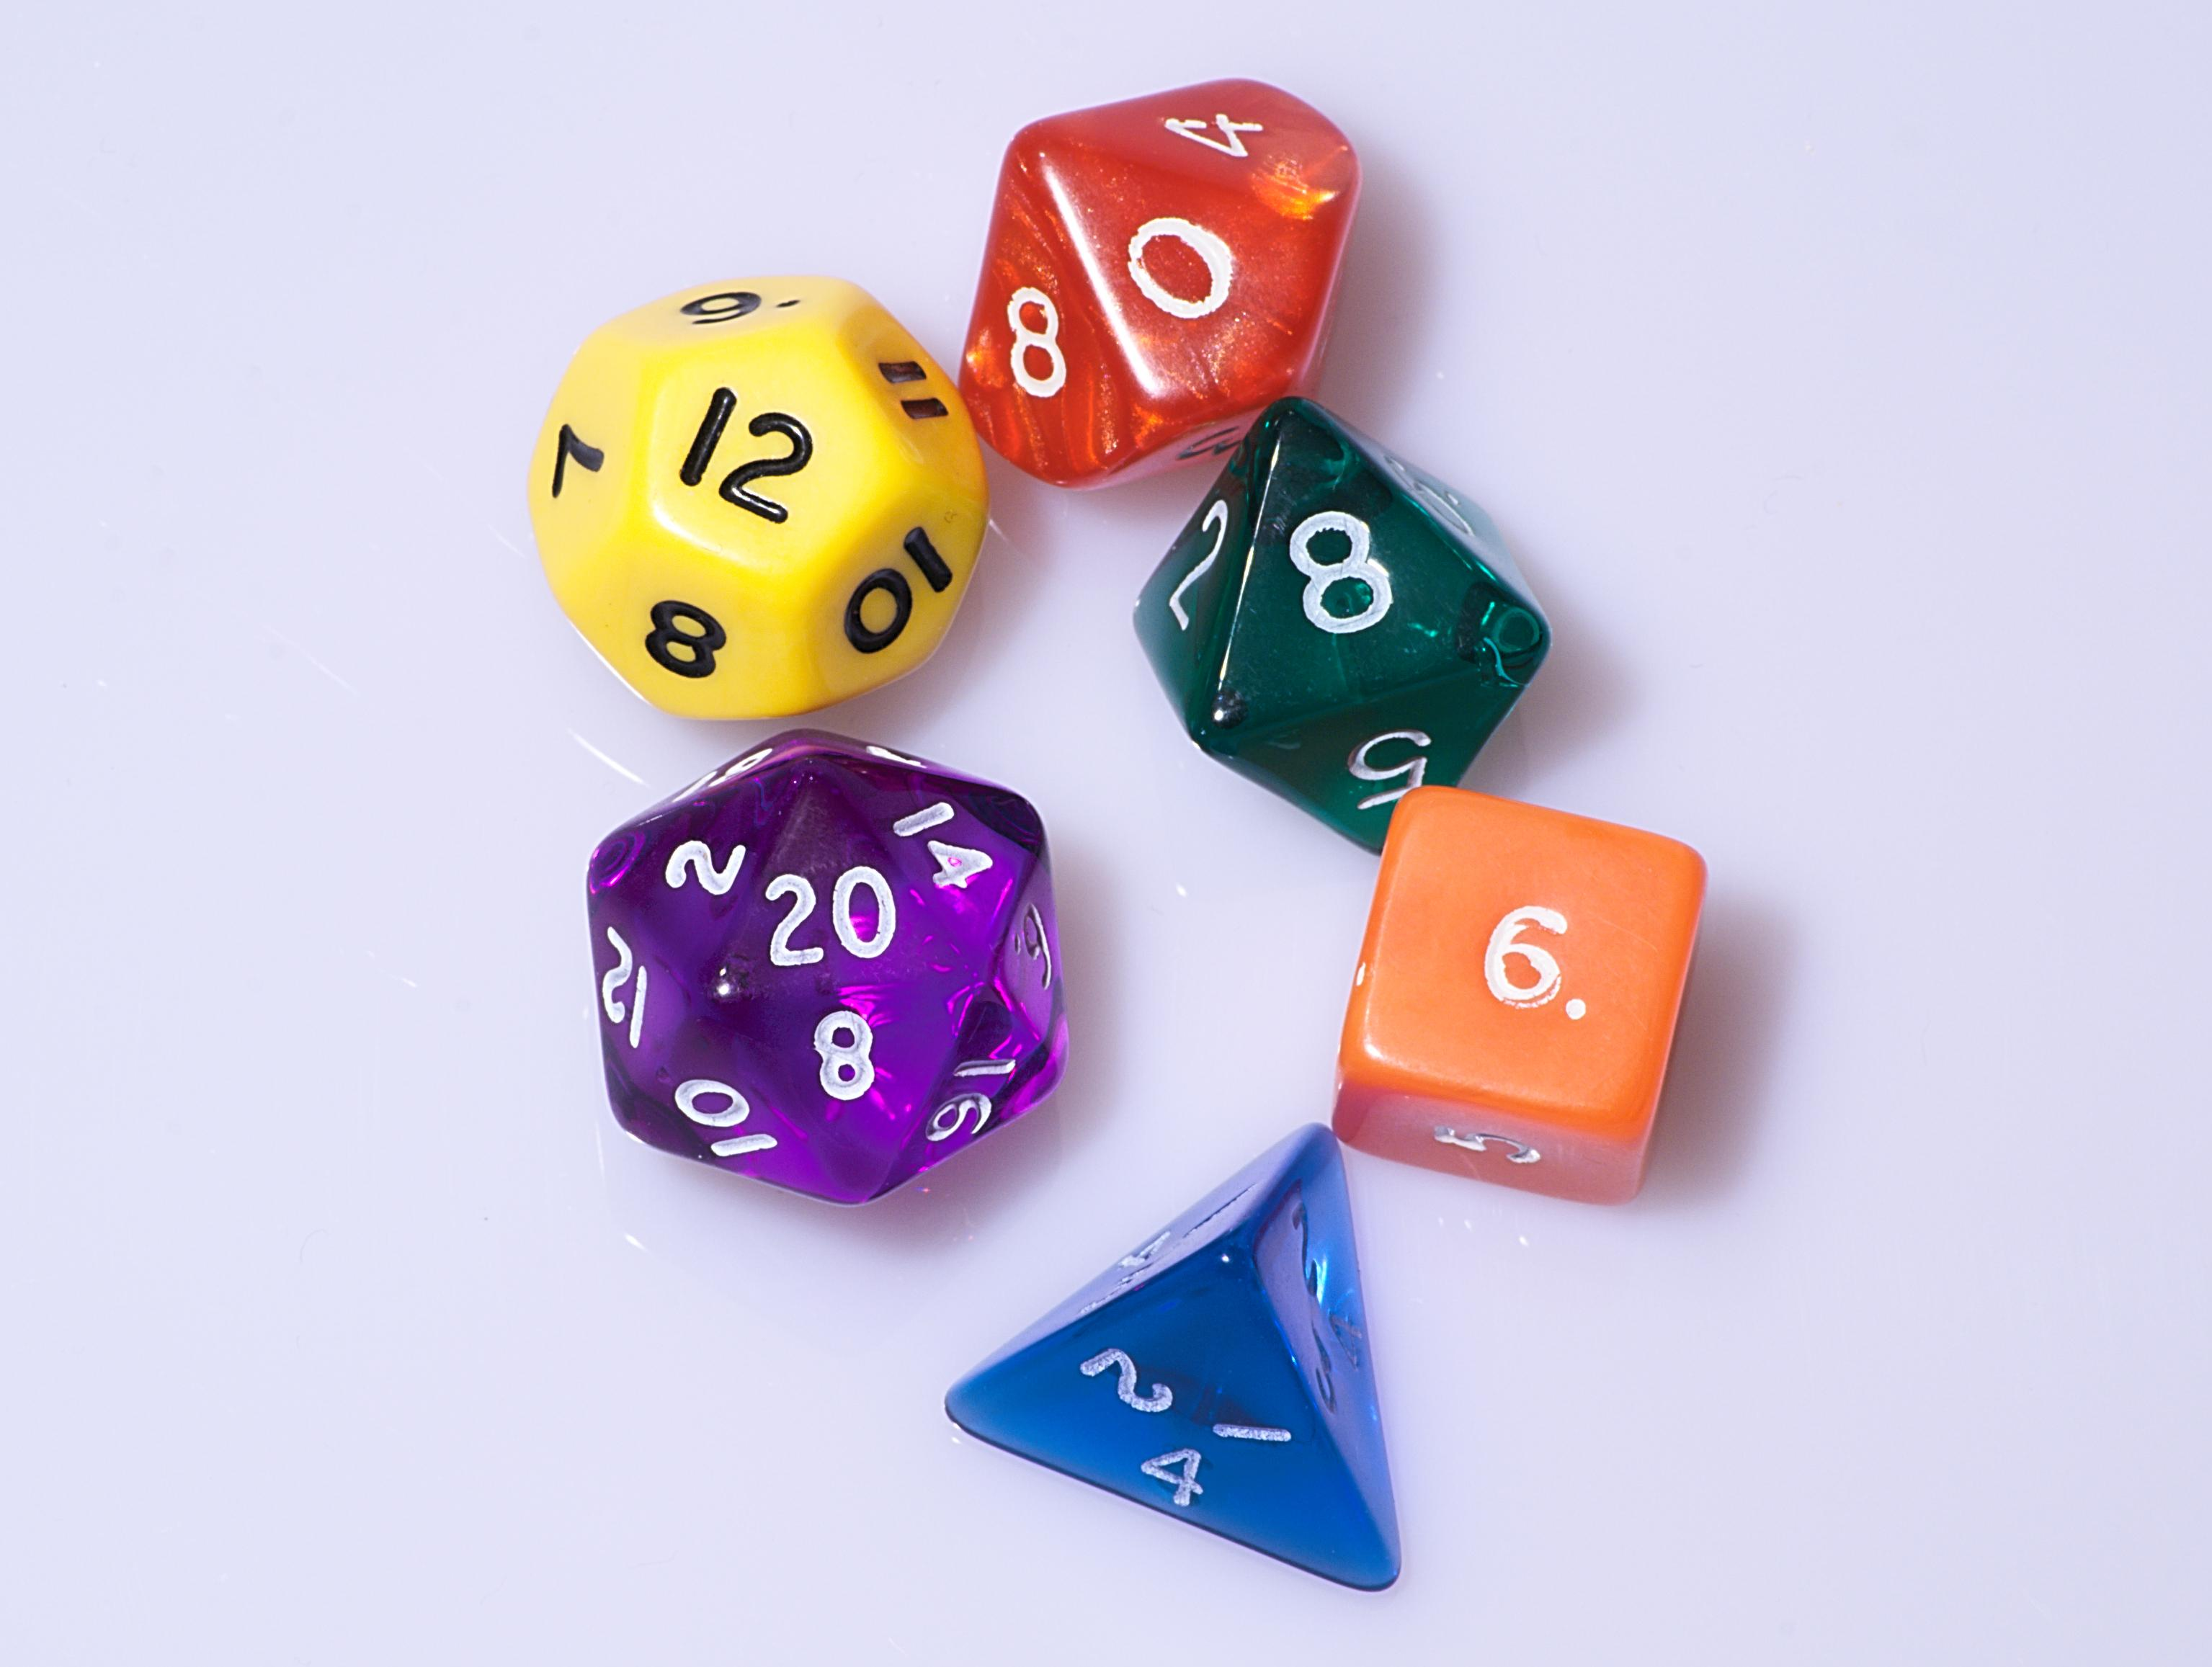 6 multicolored polyhedral dice on a white surface